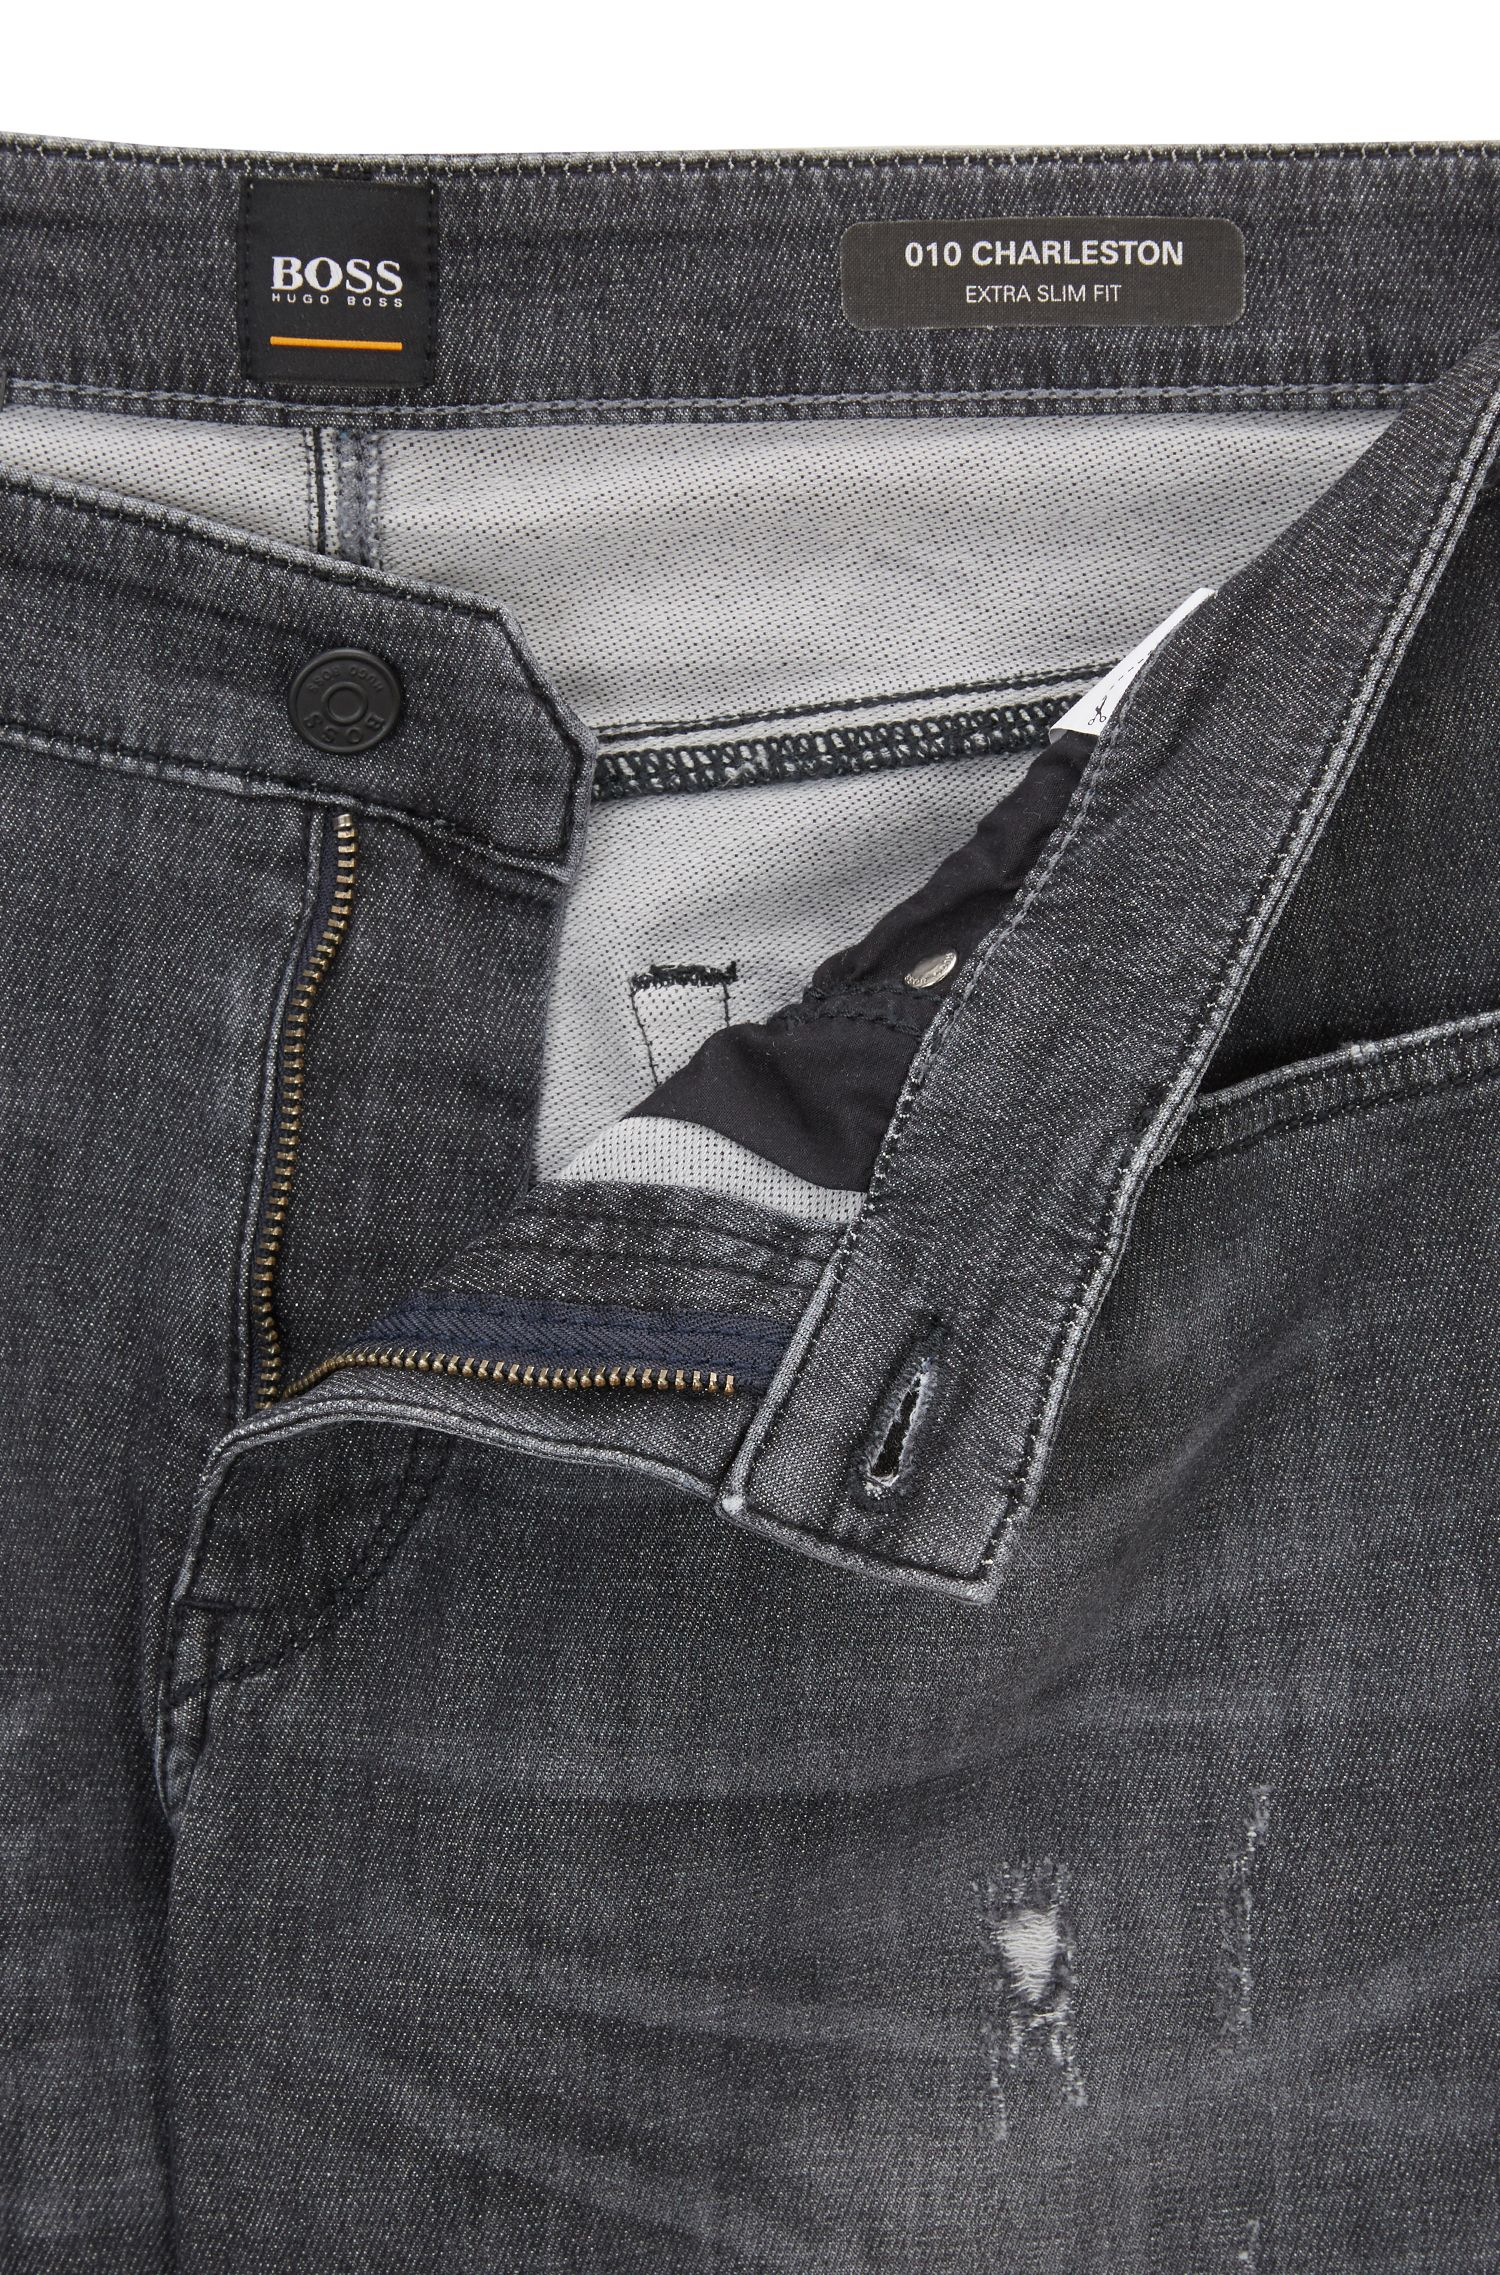 Vaqueros skinny fit en denim elástico tejido de color gris